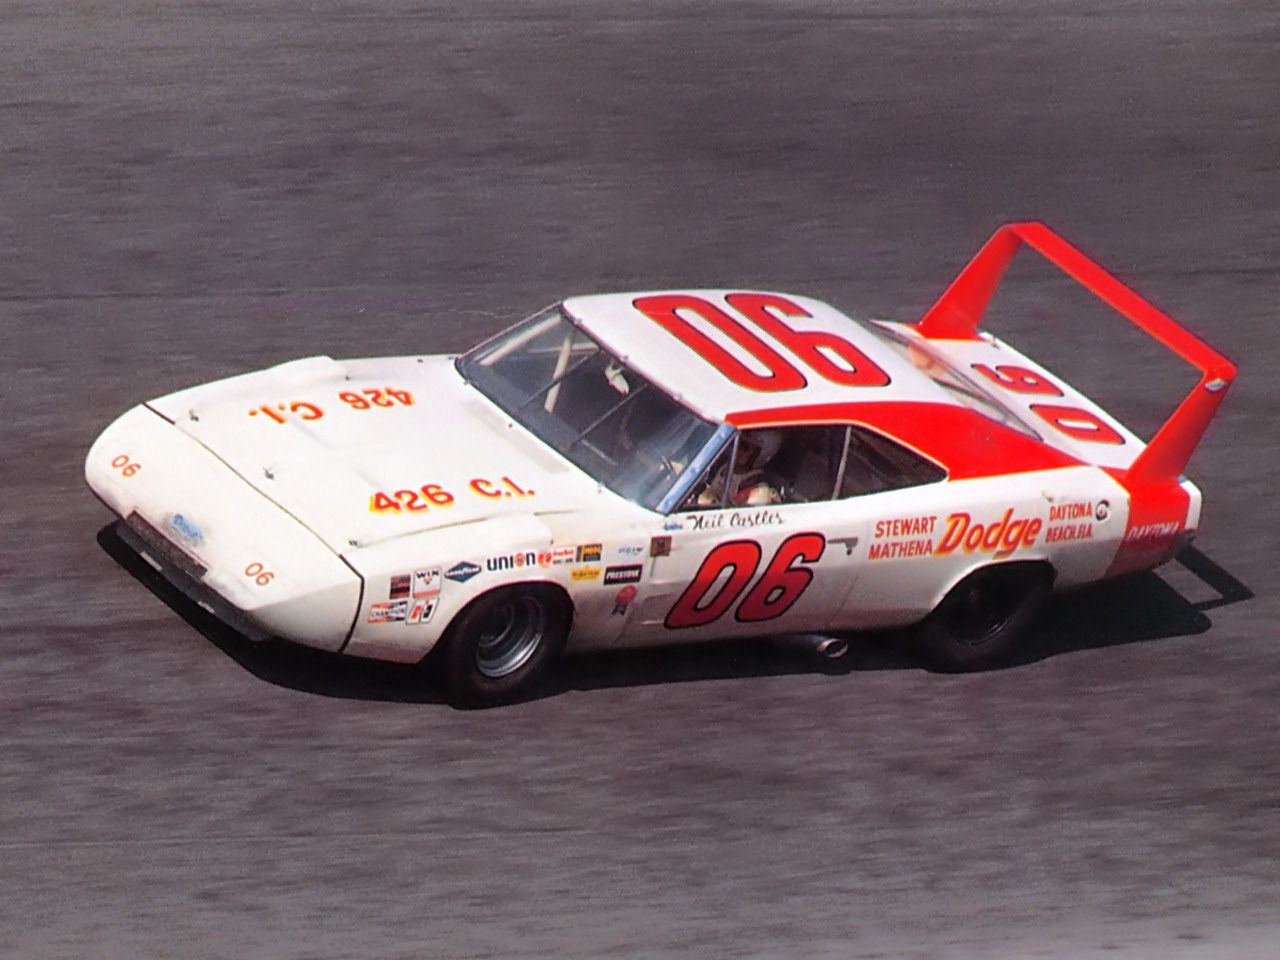 1969 Dodge Charger Daytona Nascar Race Car At Speed Driven By Neil